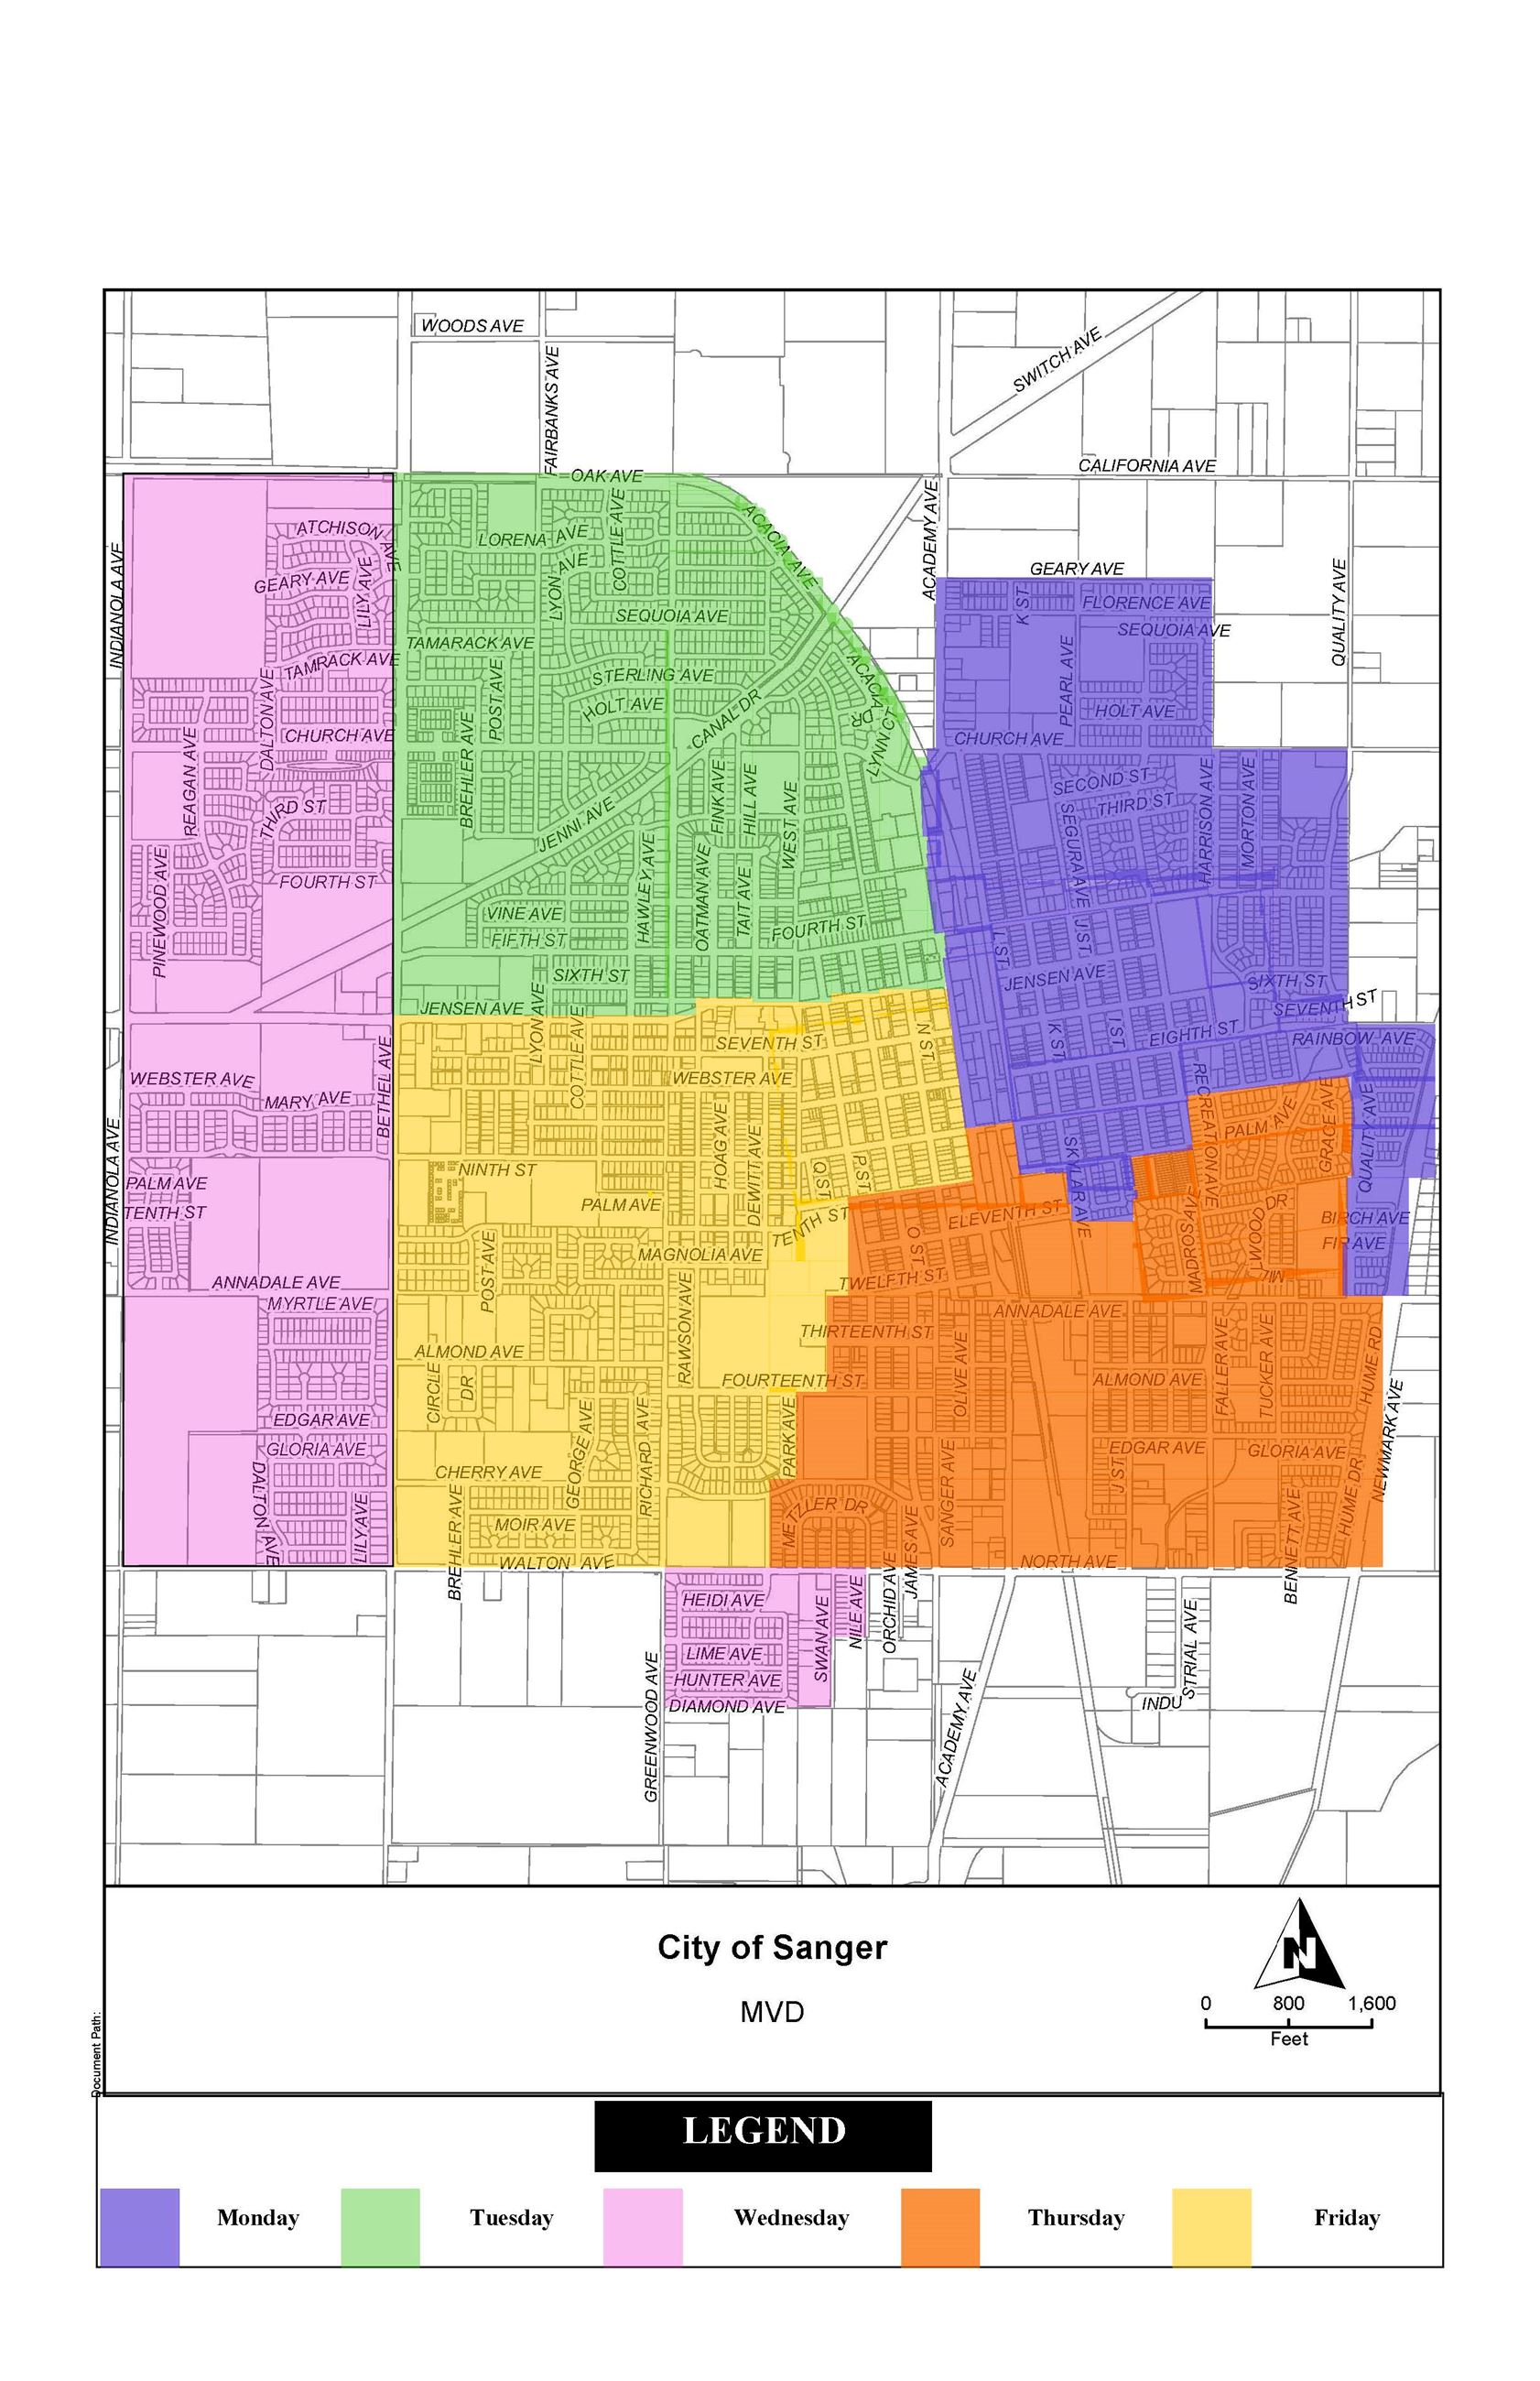 City of Sanger Garbage Collection Schedule Map - 2012 (JPG)